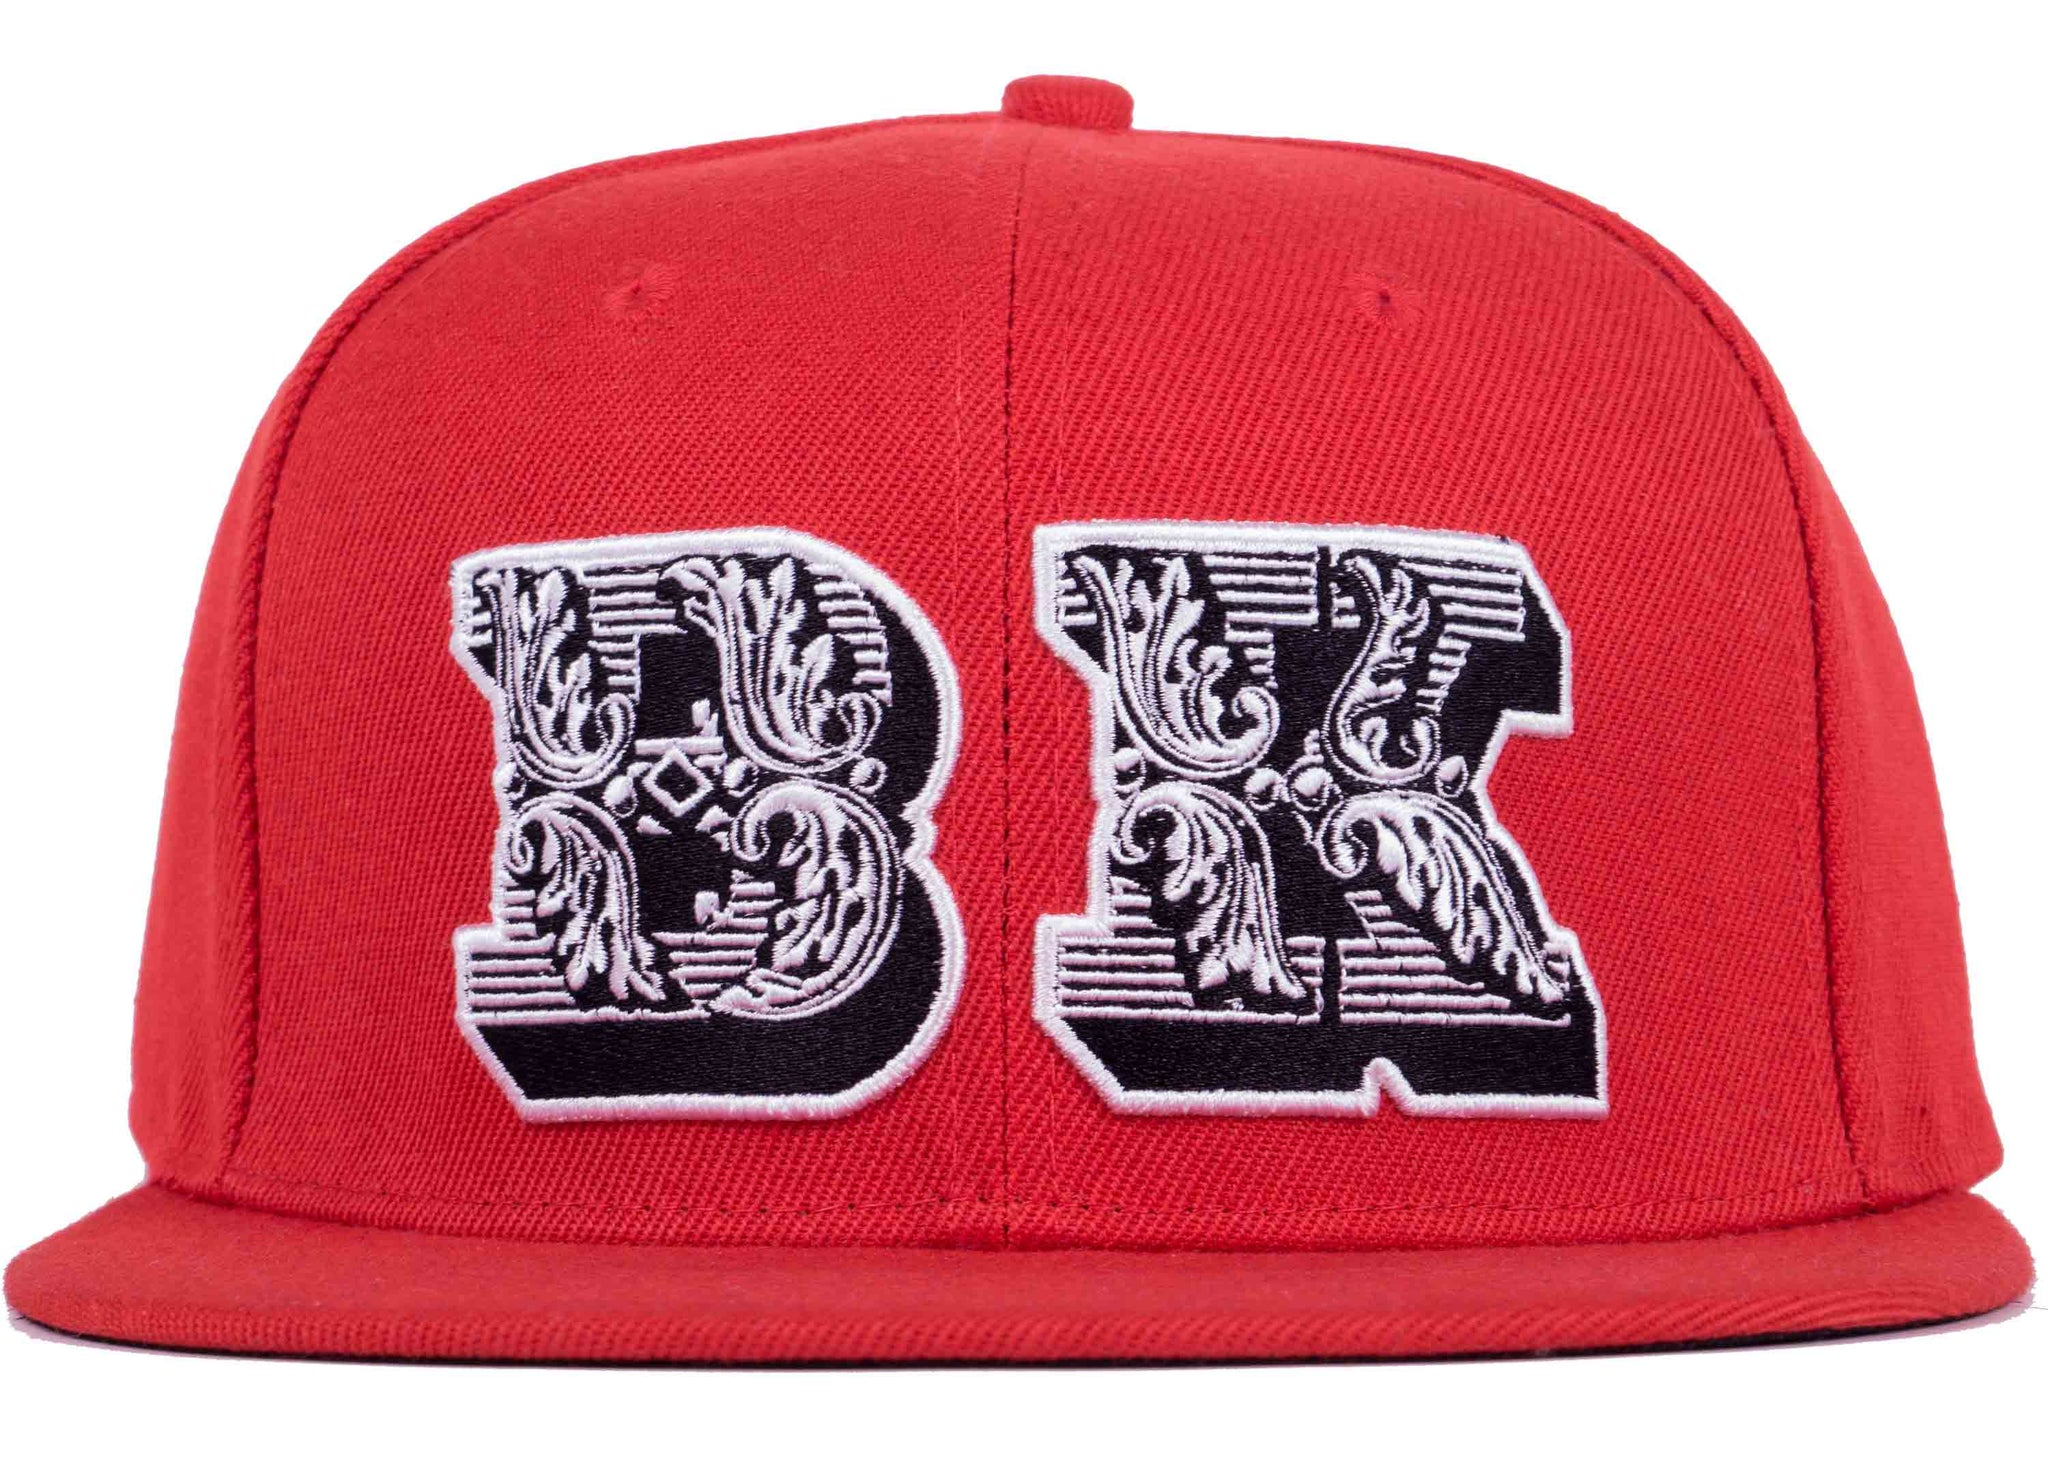 Brooklyn bk snapback head crack nyc new era ... timeless design ... a418fe2ef7a